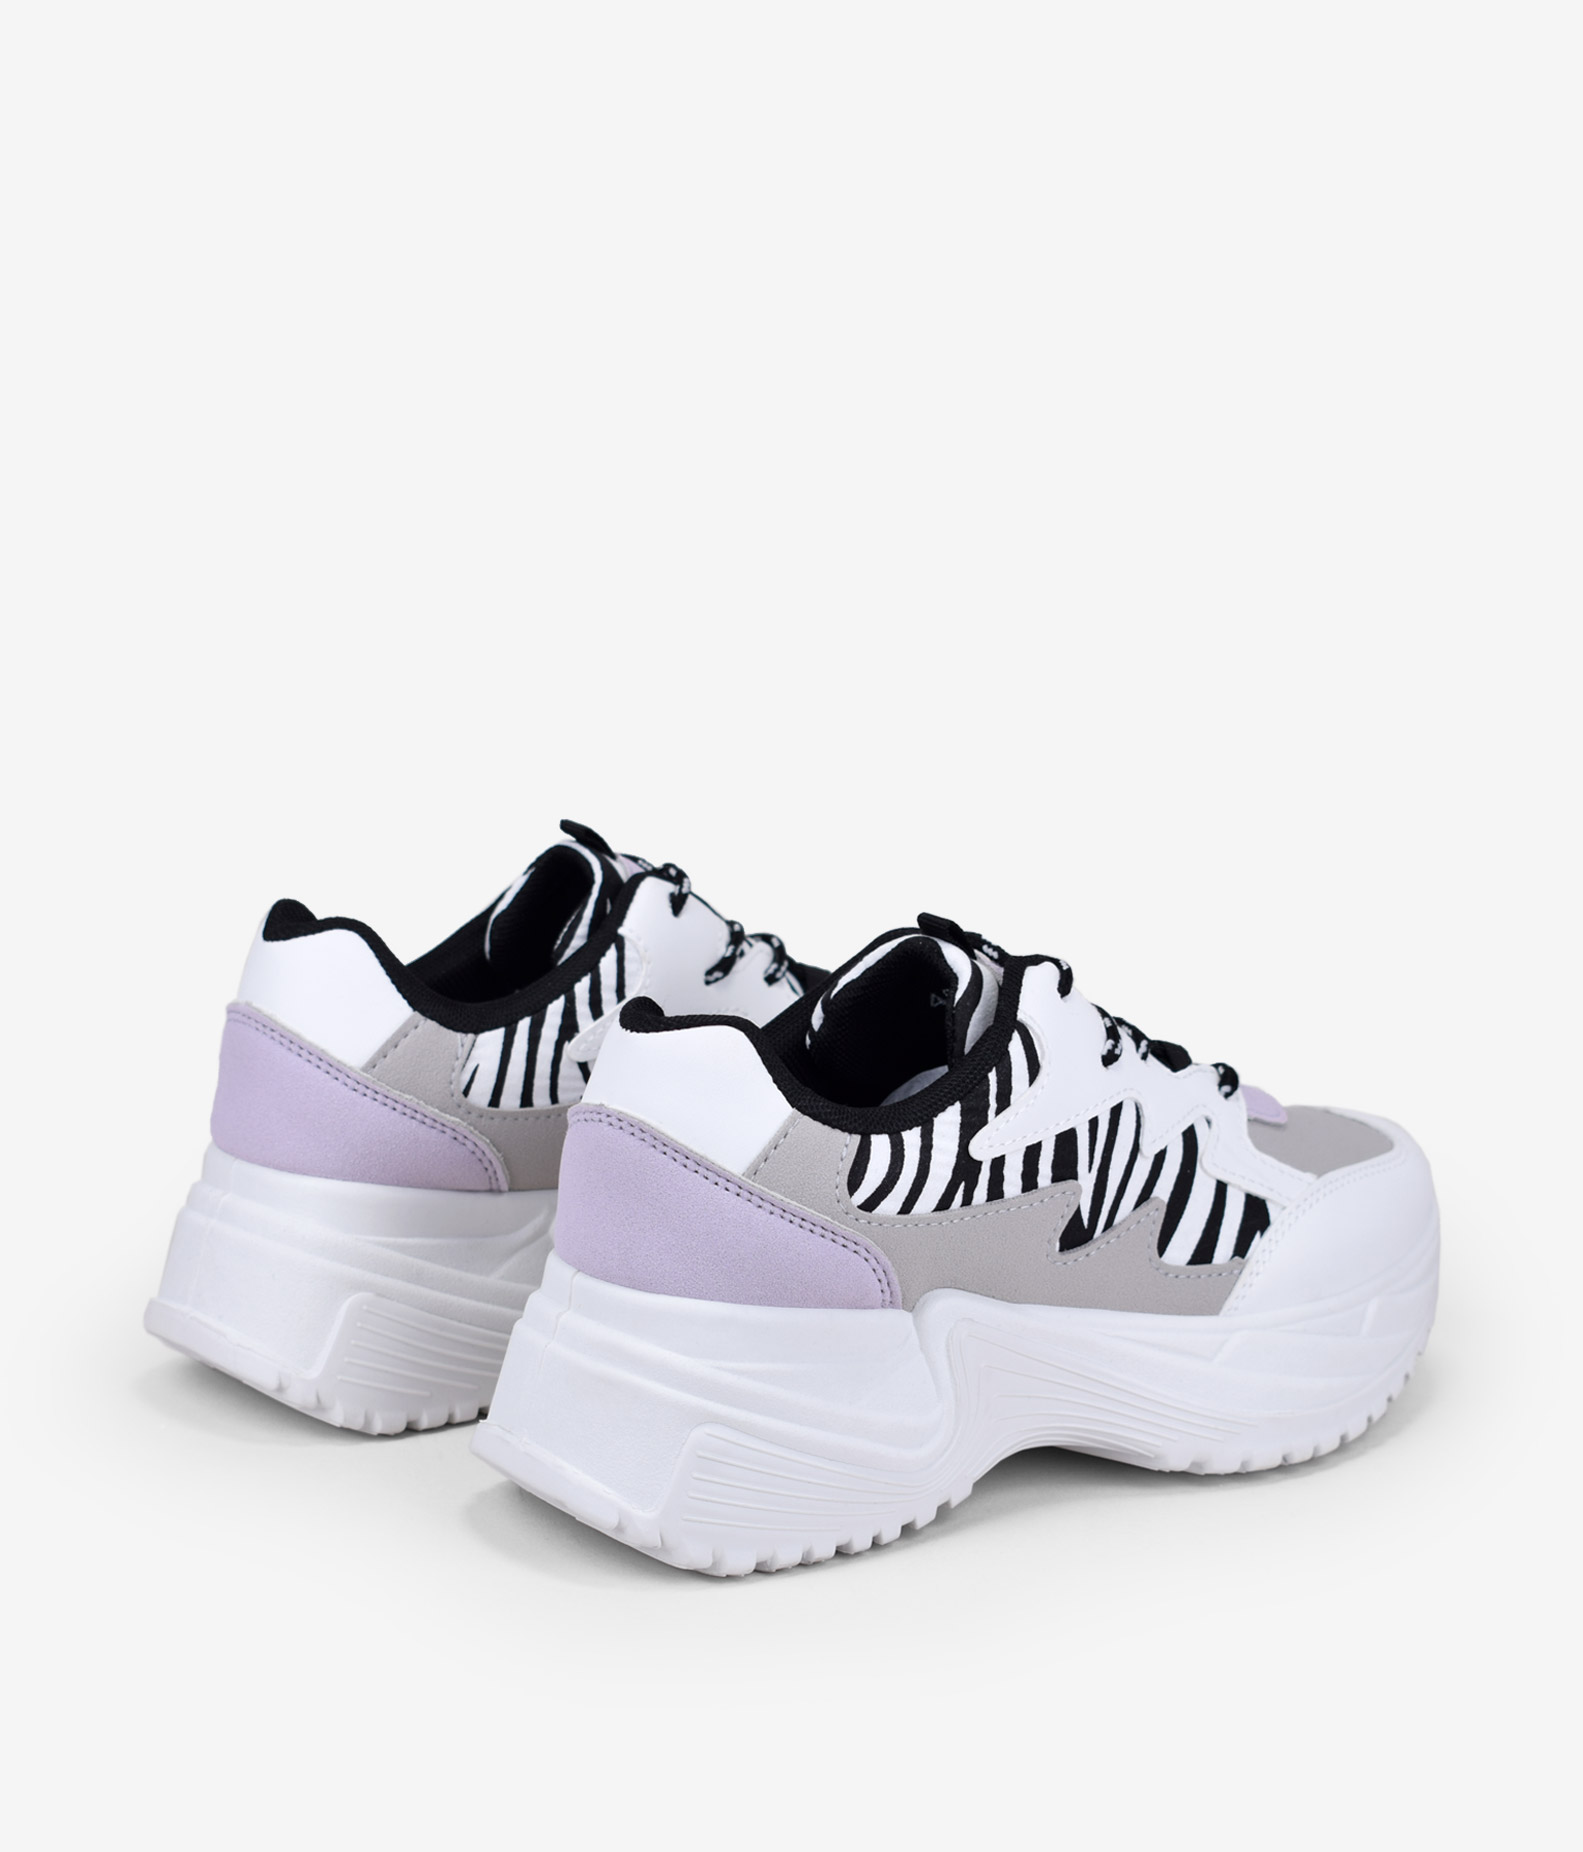 zapatillas plataforma print animal